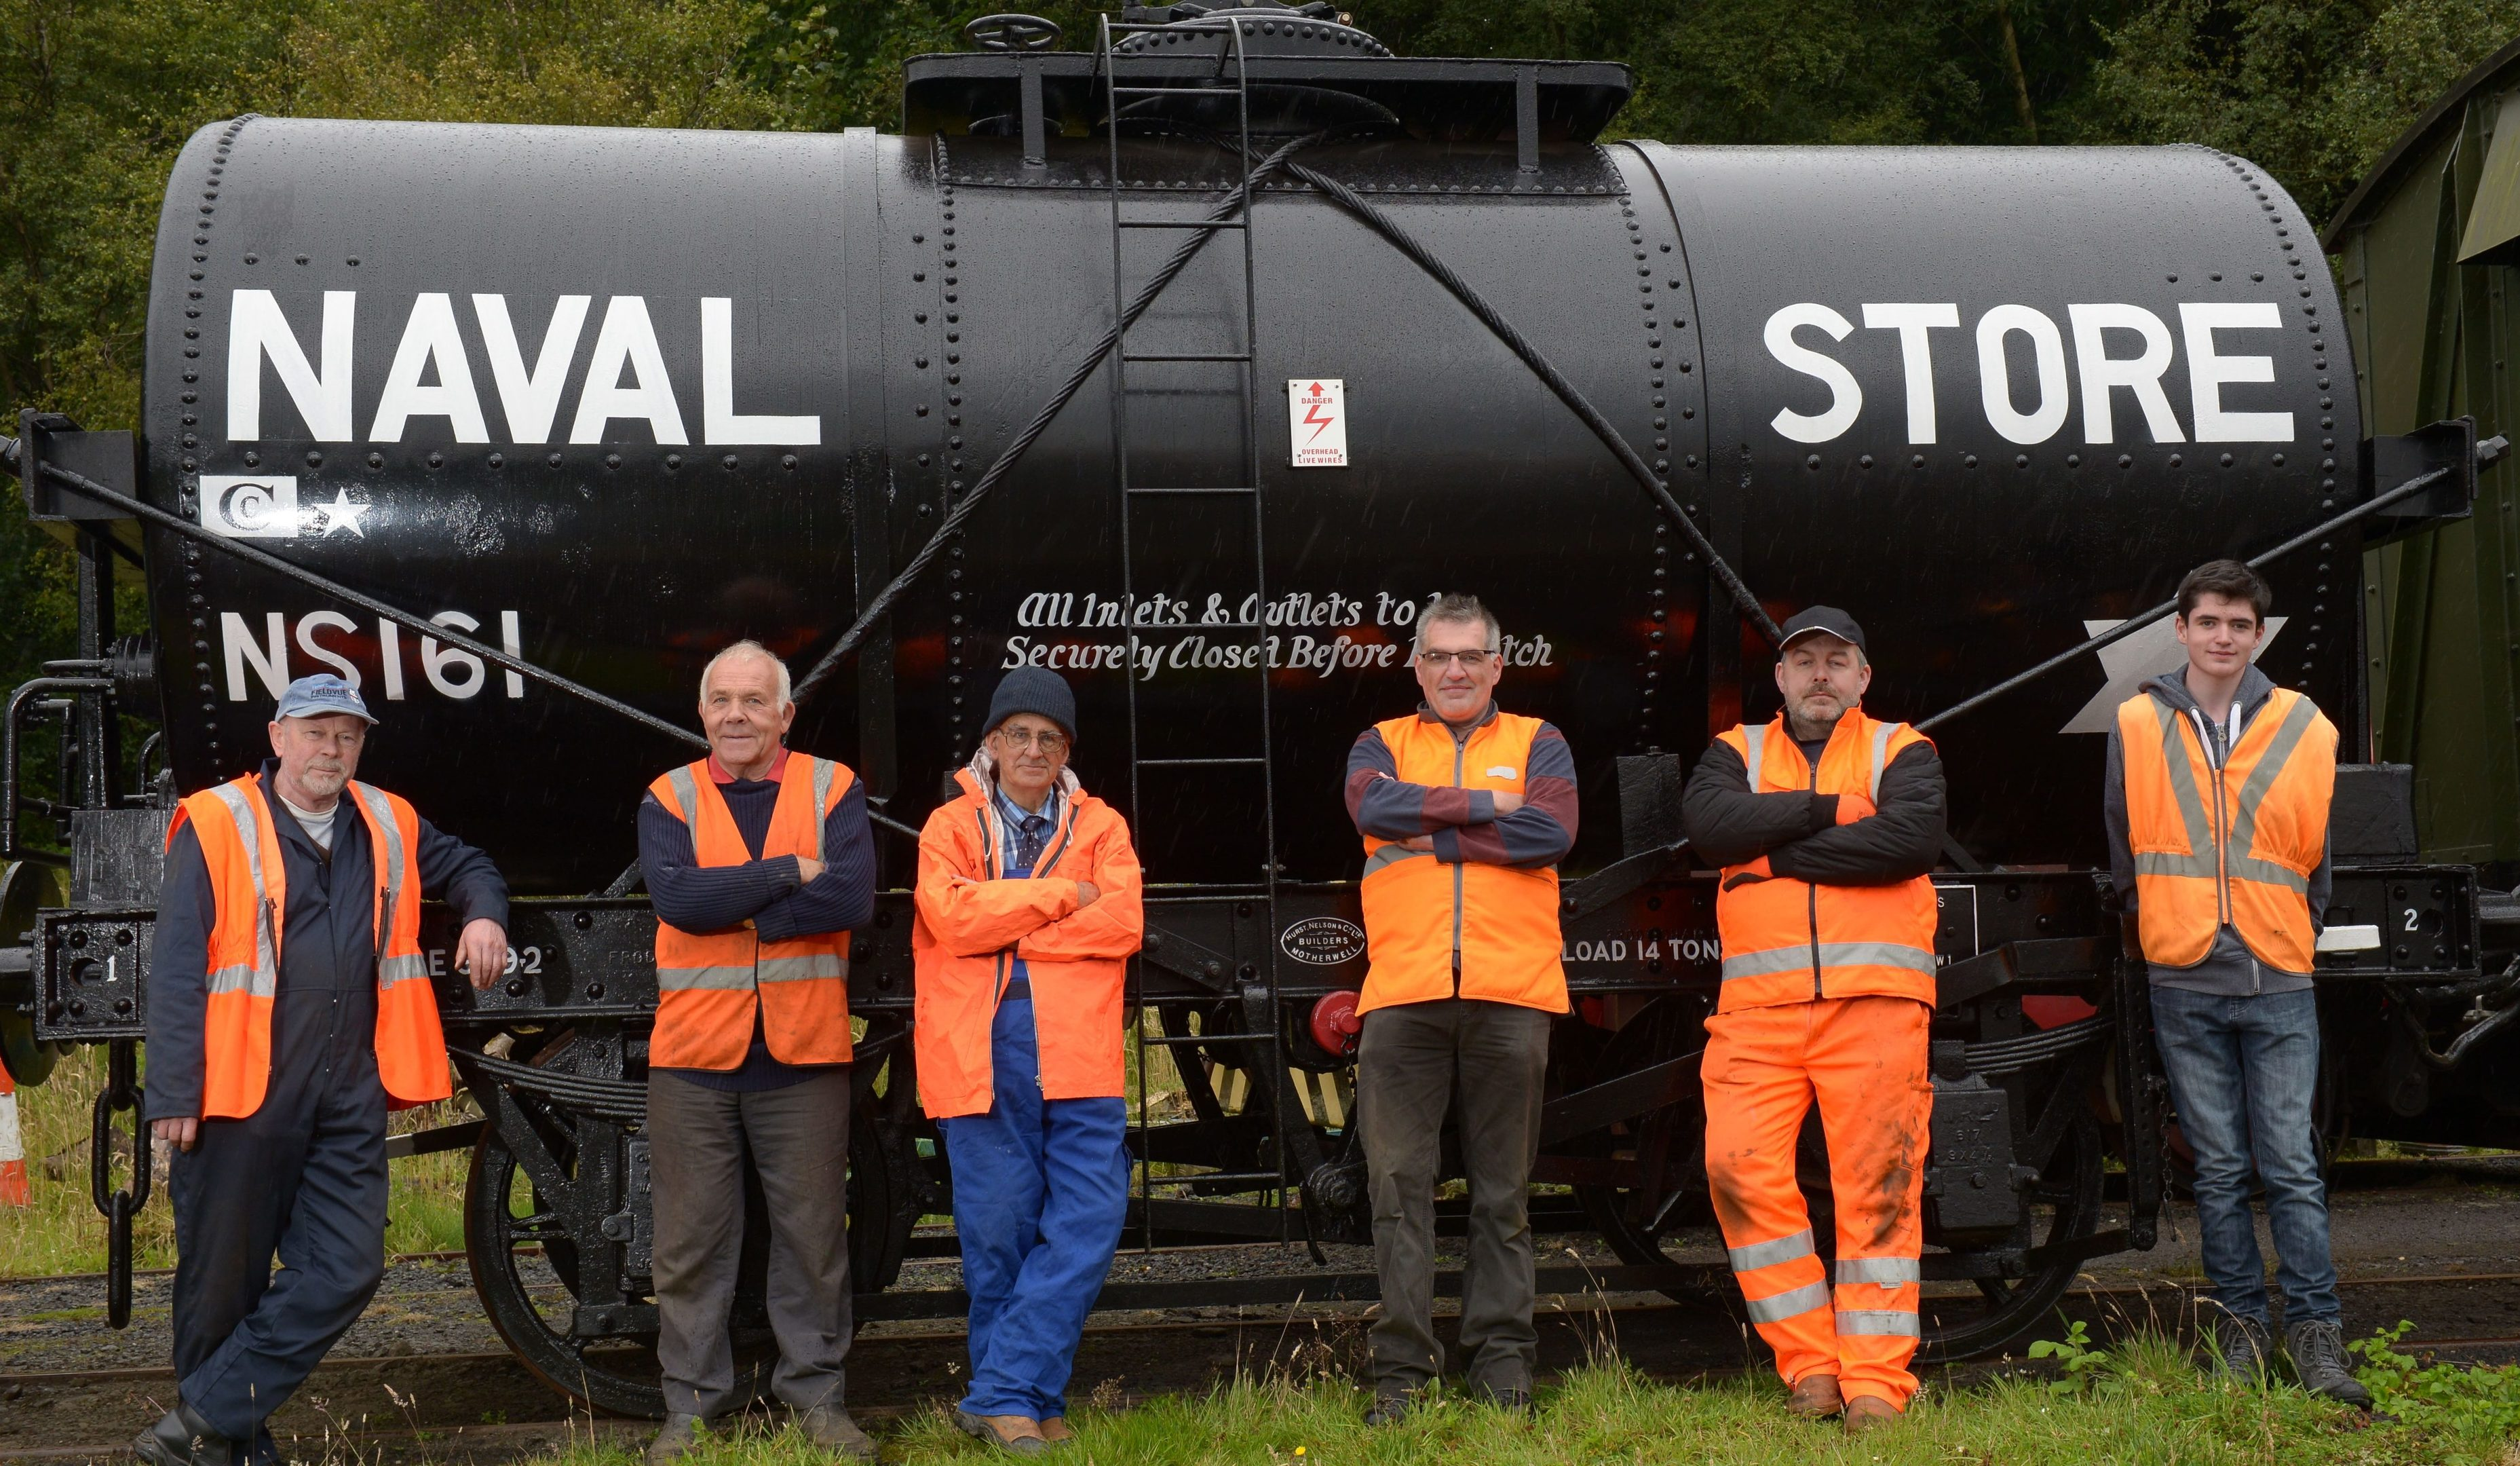 Shed 47 Restoration Group are: left to right; Norrie Briggs; Jan Littwin; Peter Westwater; Grant Robertson; Mark Bradshaw and Aiden Robertson